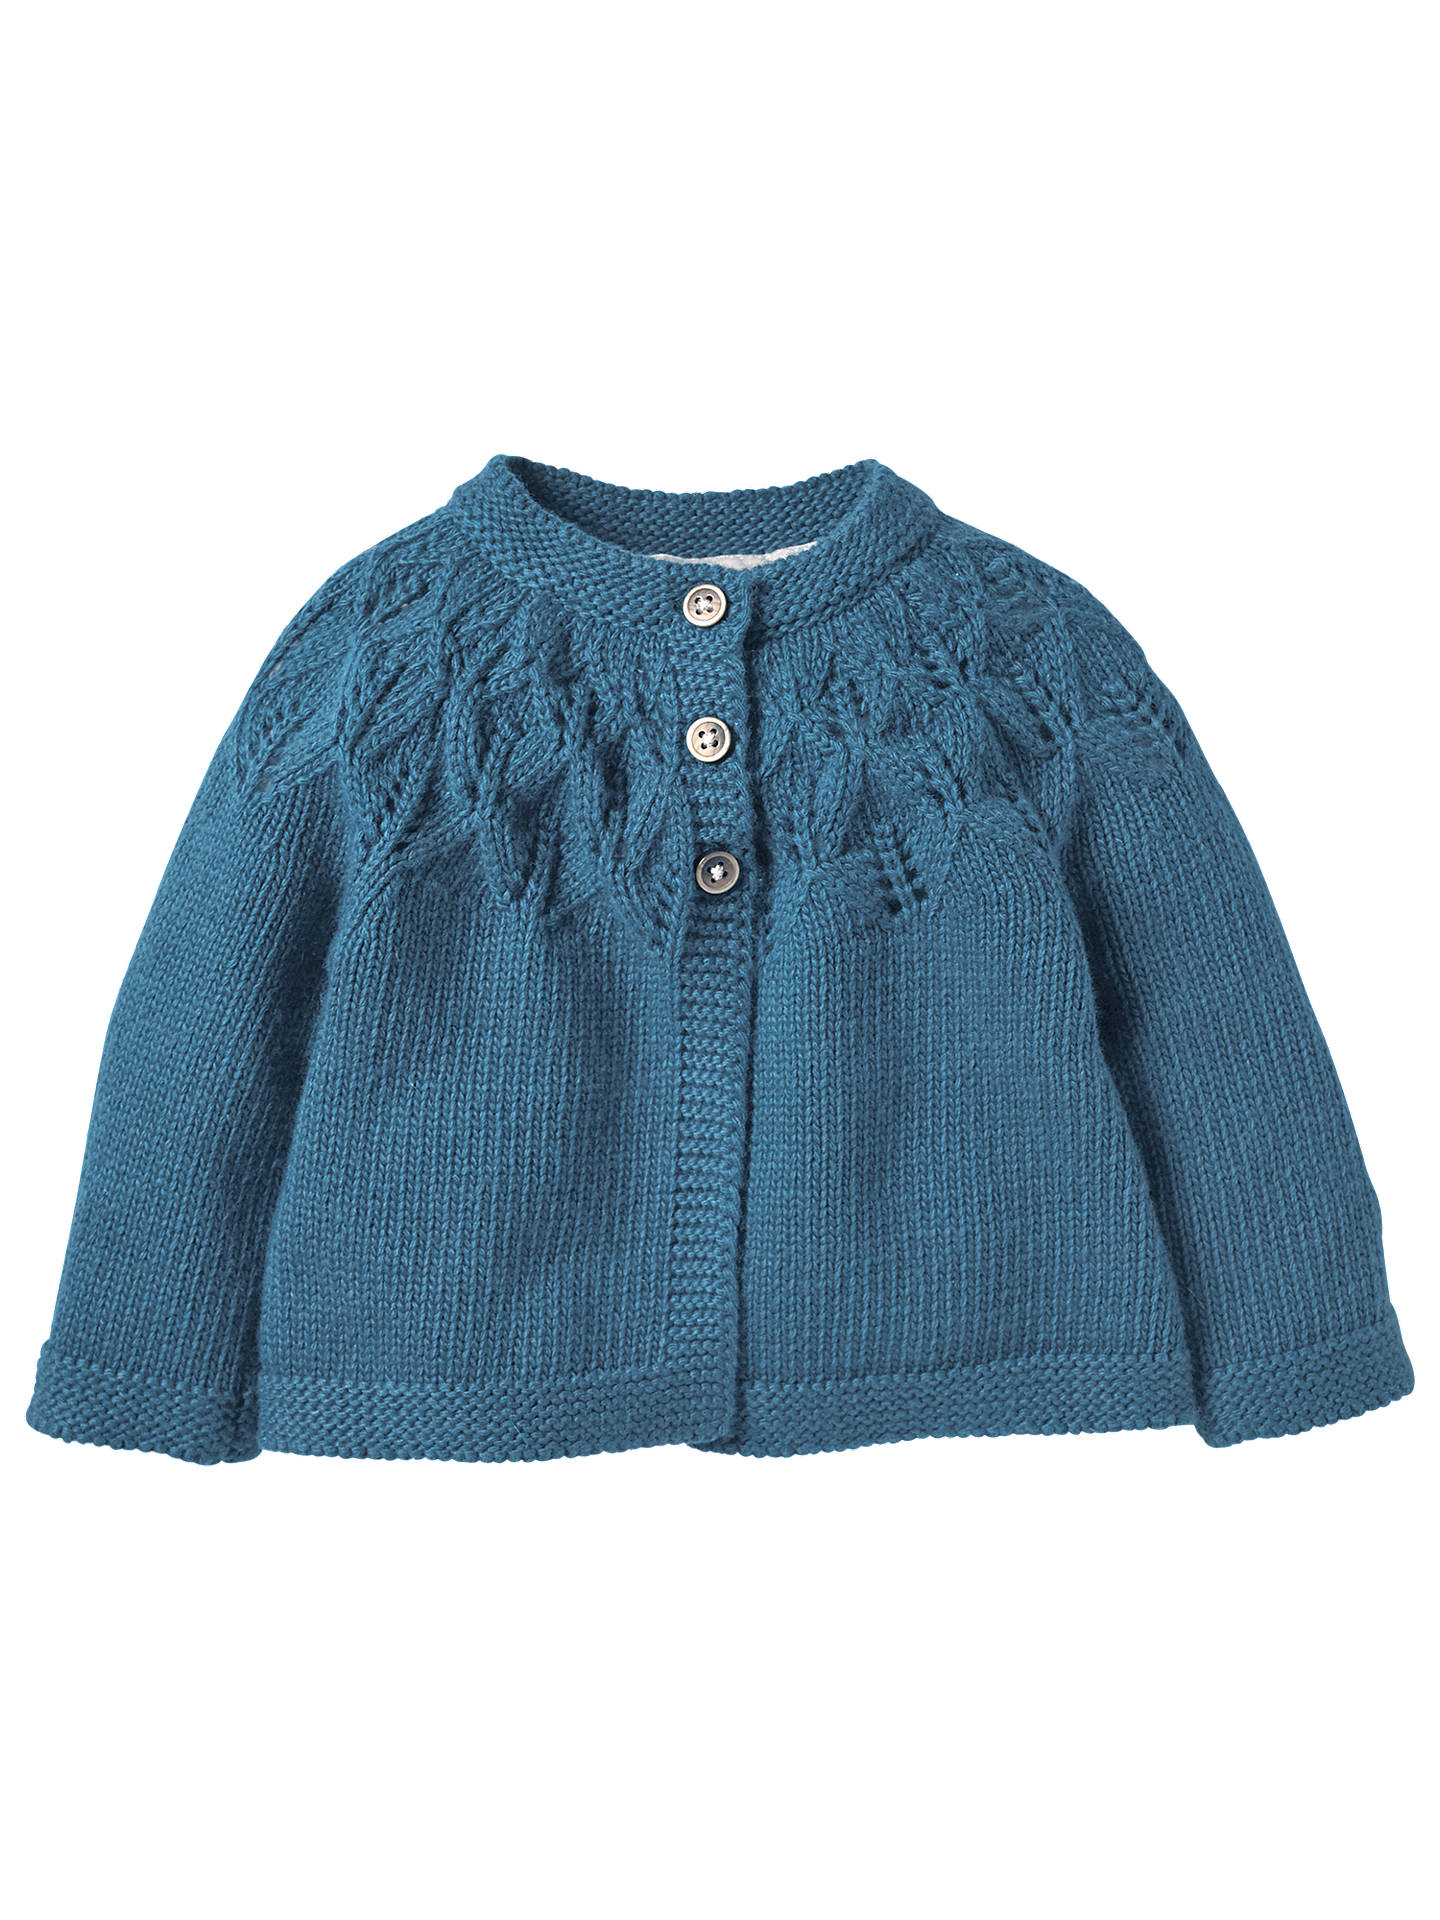 Mini Boden Baby Crochet Knit Cardigan Azure Bue At John Lewis